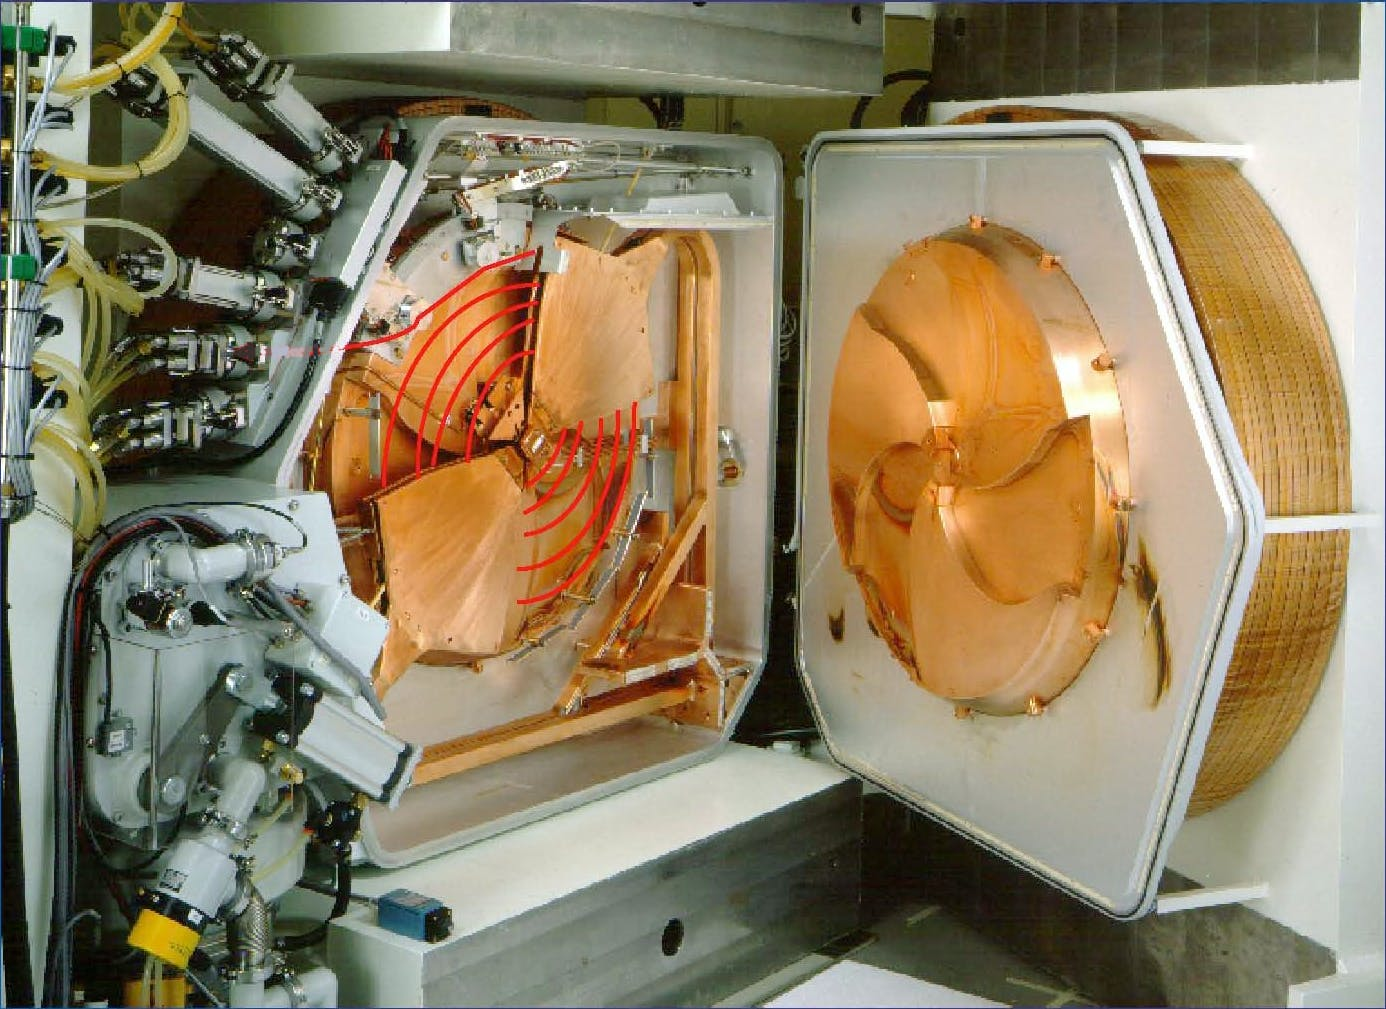 Internal View of Cyclotron